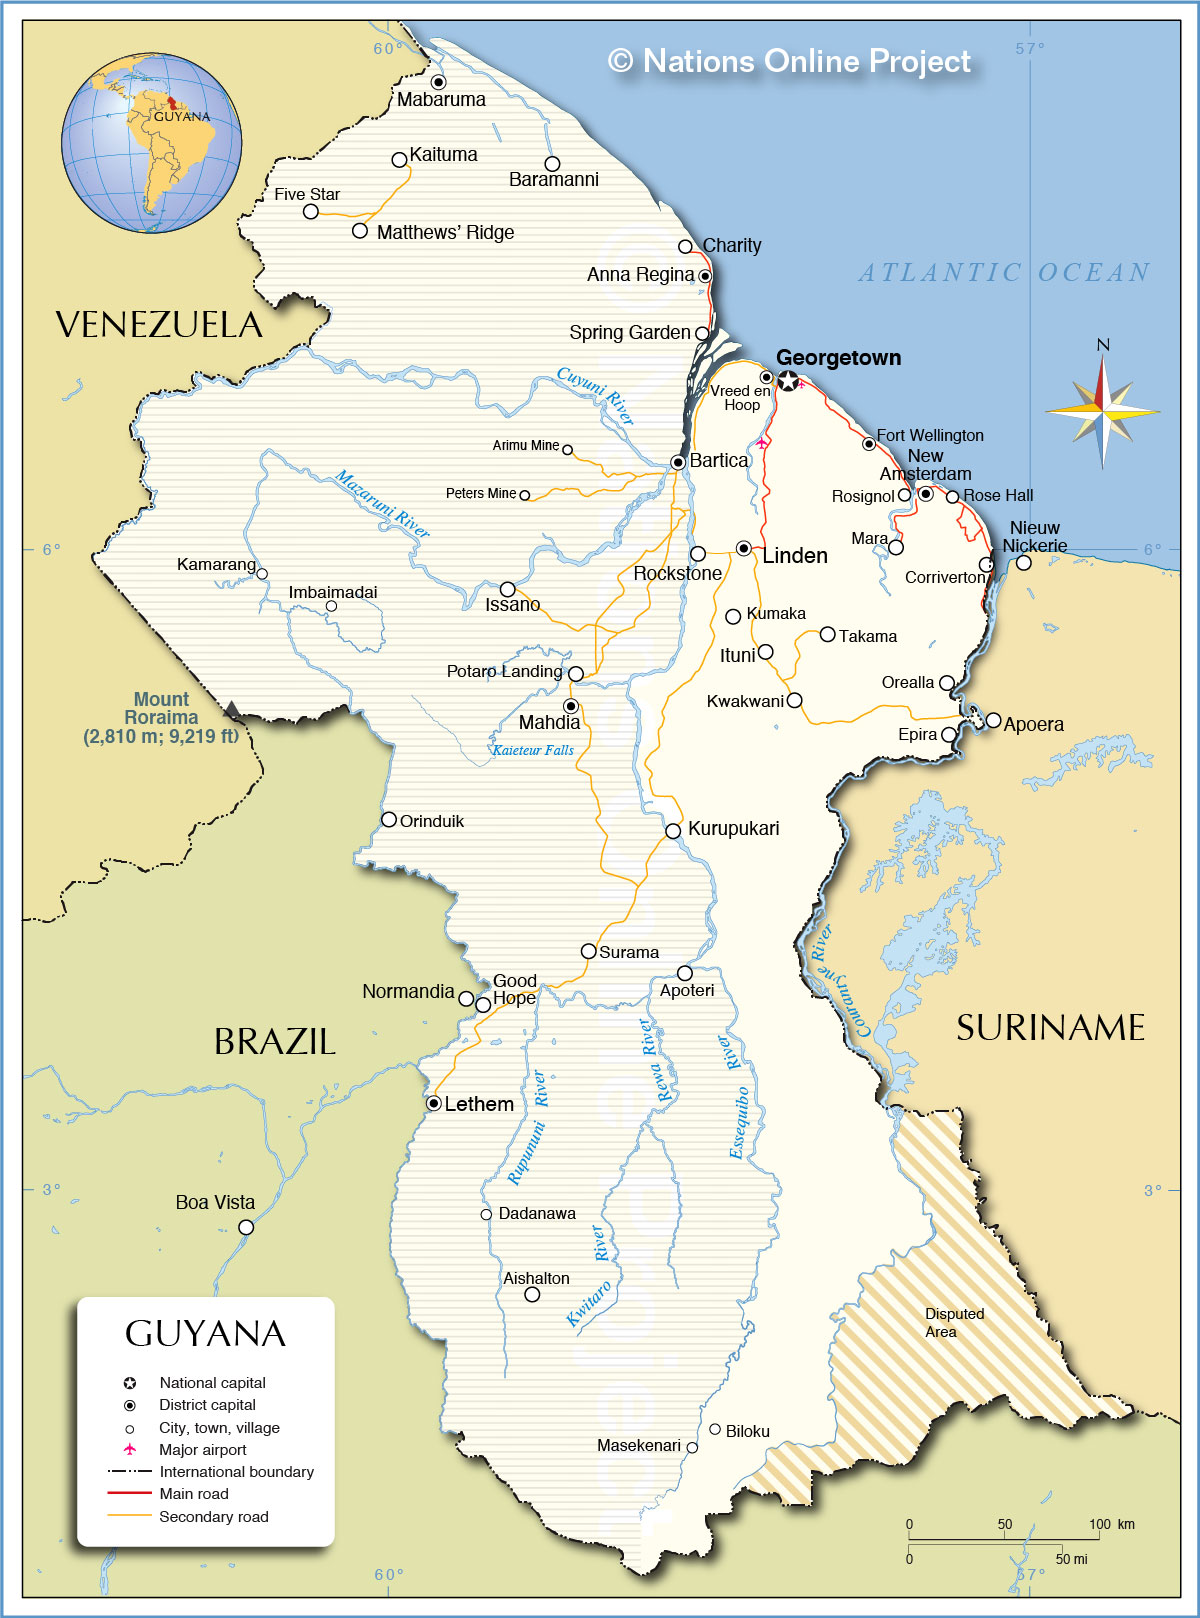 Political Map of Guyana - Nations Online Project